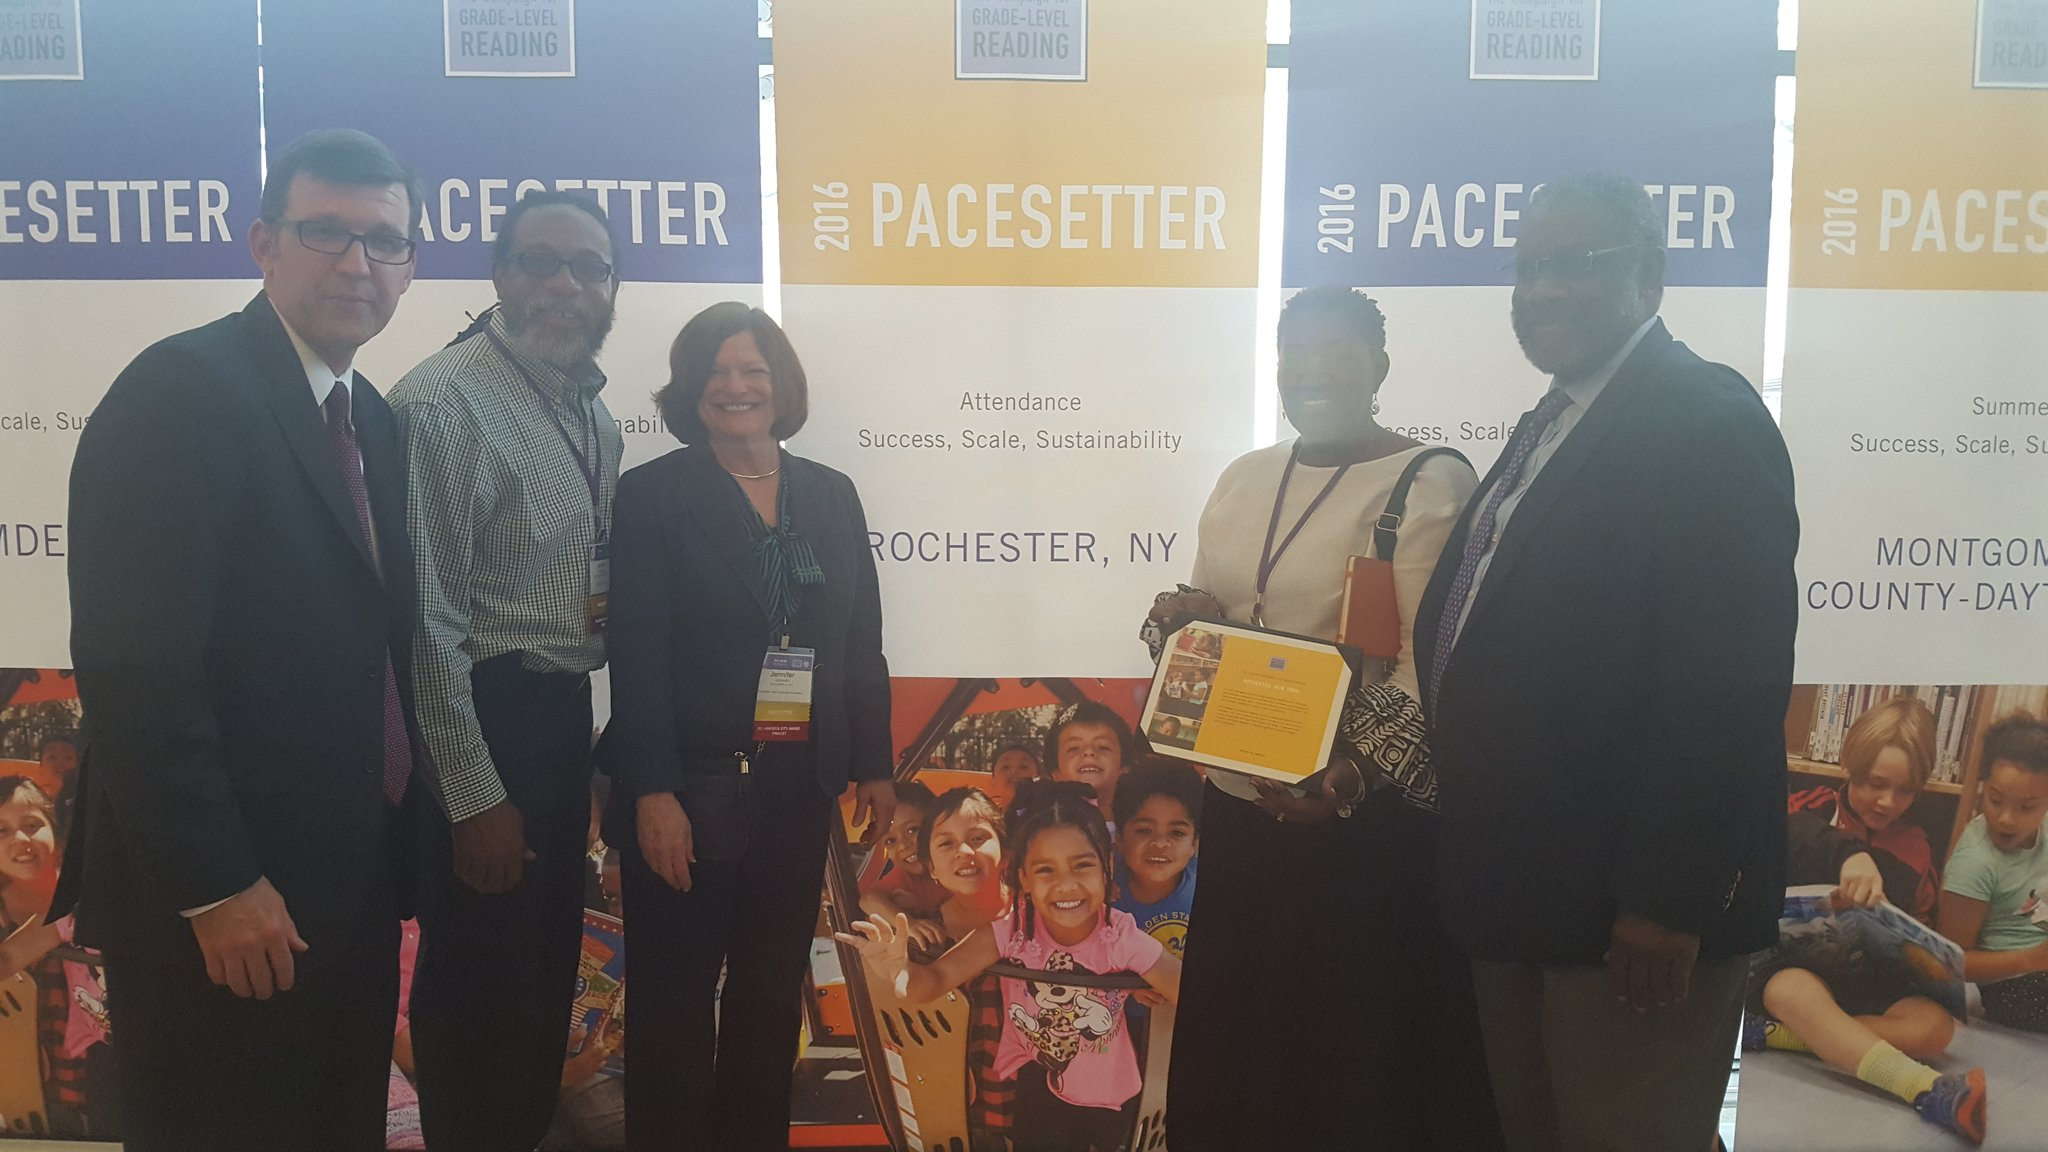 It's official. We got our certificate from the #GLRWeek folks. Thanks to all our community partners for making ROC a Pacesetter City. https://t.co/UXL5iDKsC3